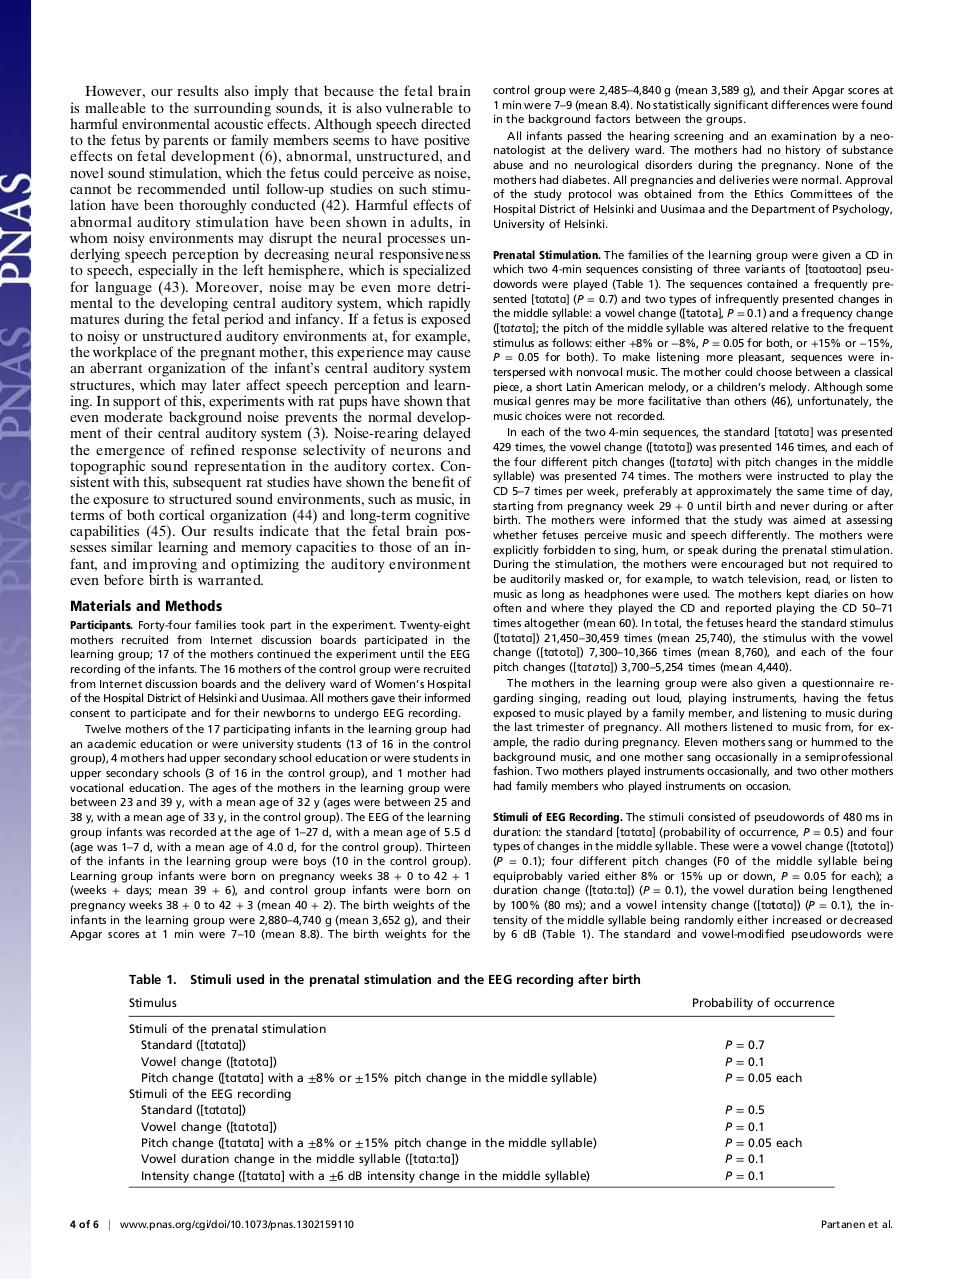 Aperçu du fichier PDF neural-plasticity-of-speech-processing-before-birth.pdf - page 4/6